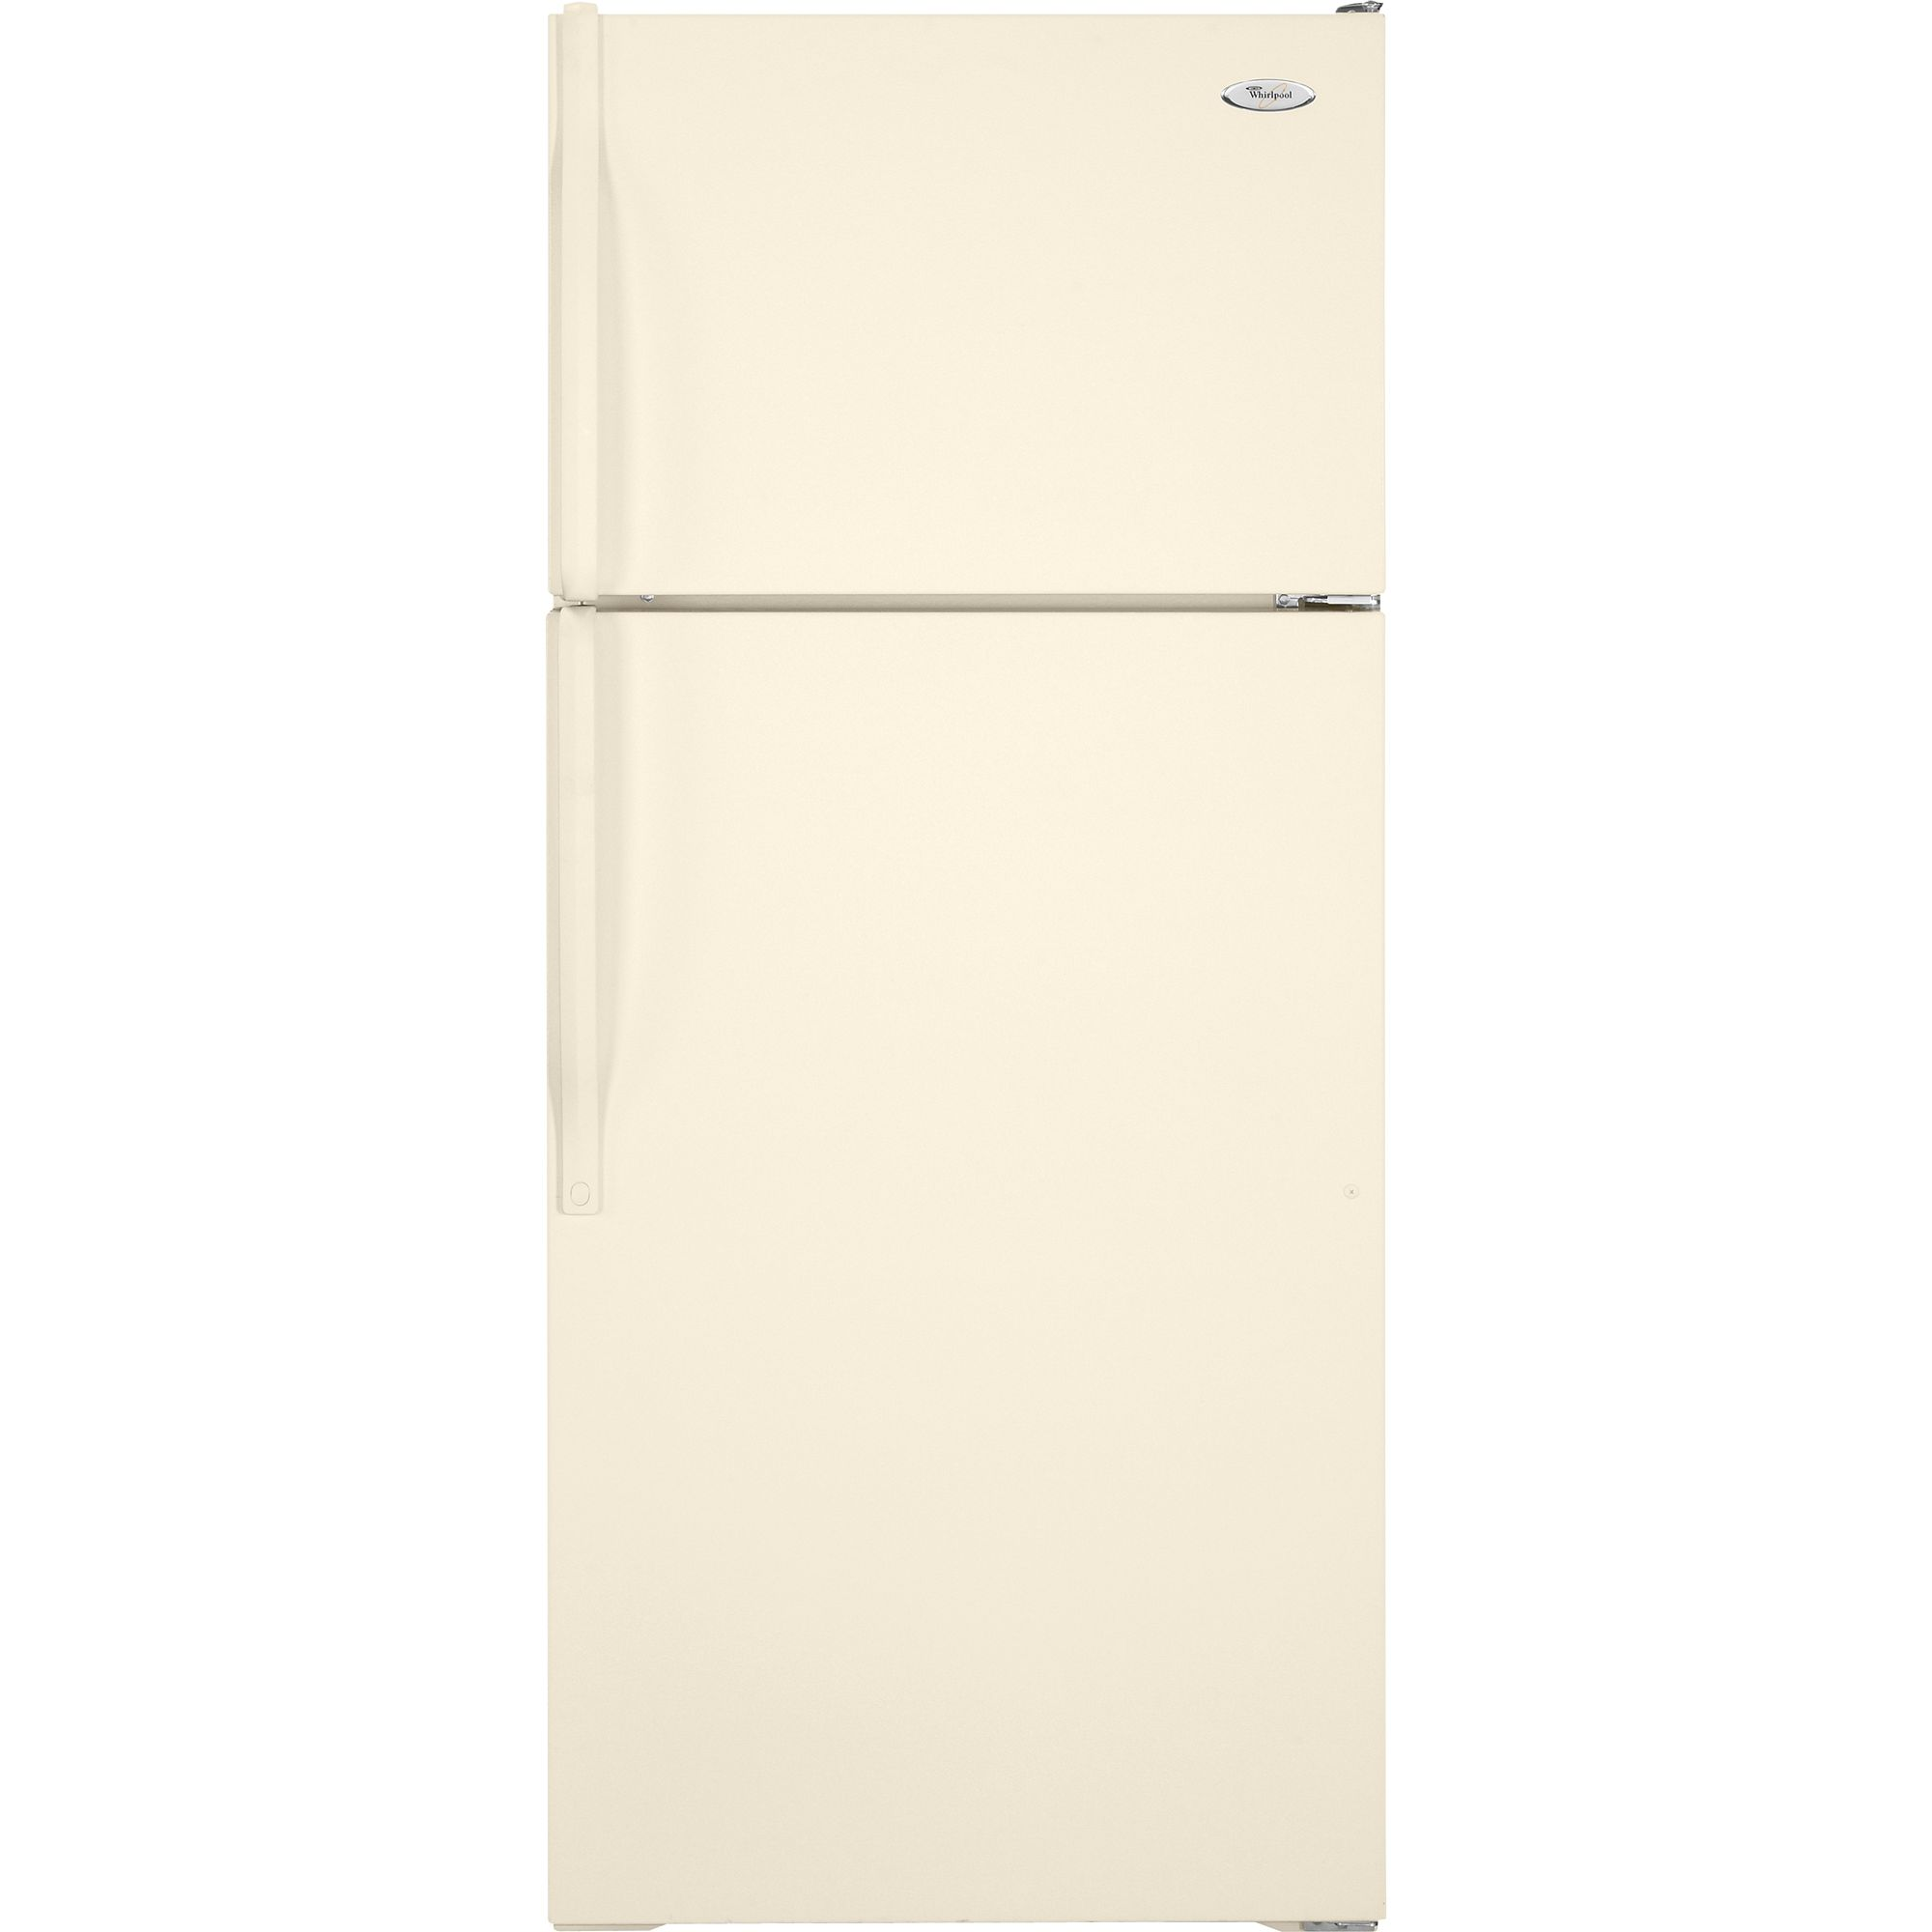 Whirlpool  15.8 cu. ft. Top Freezer Refrigerator